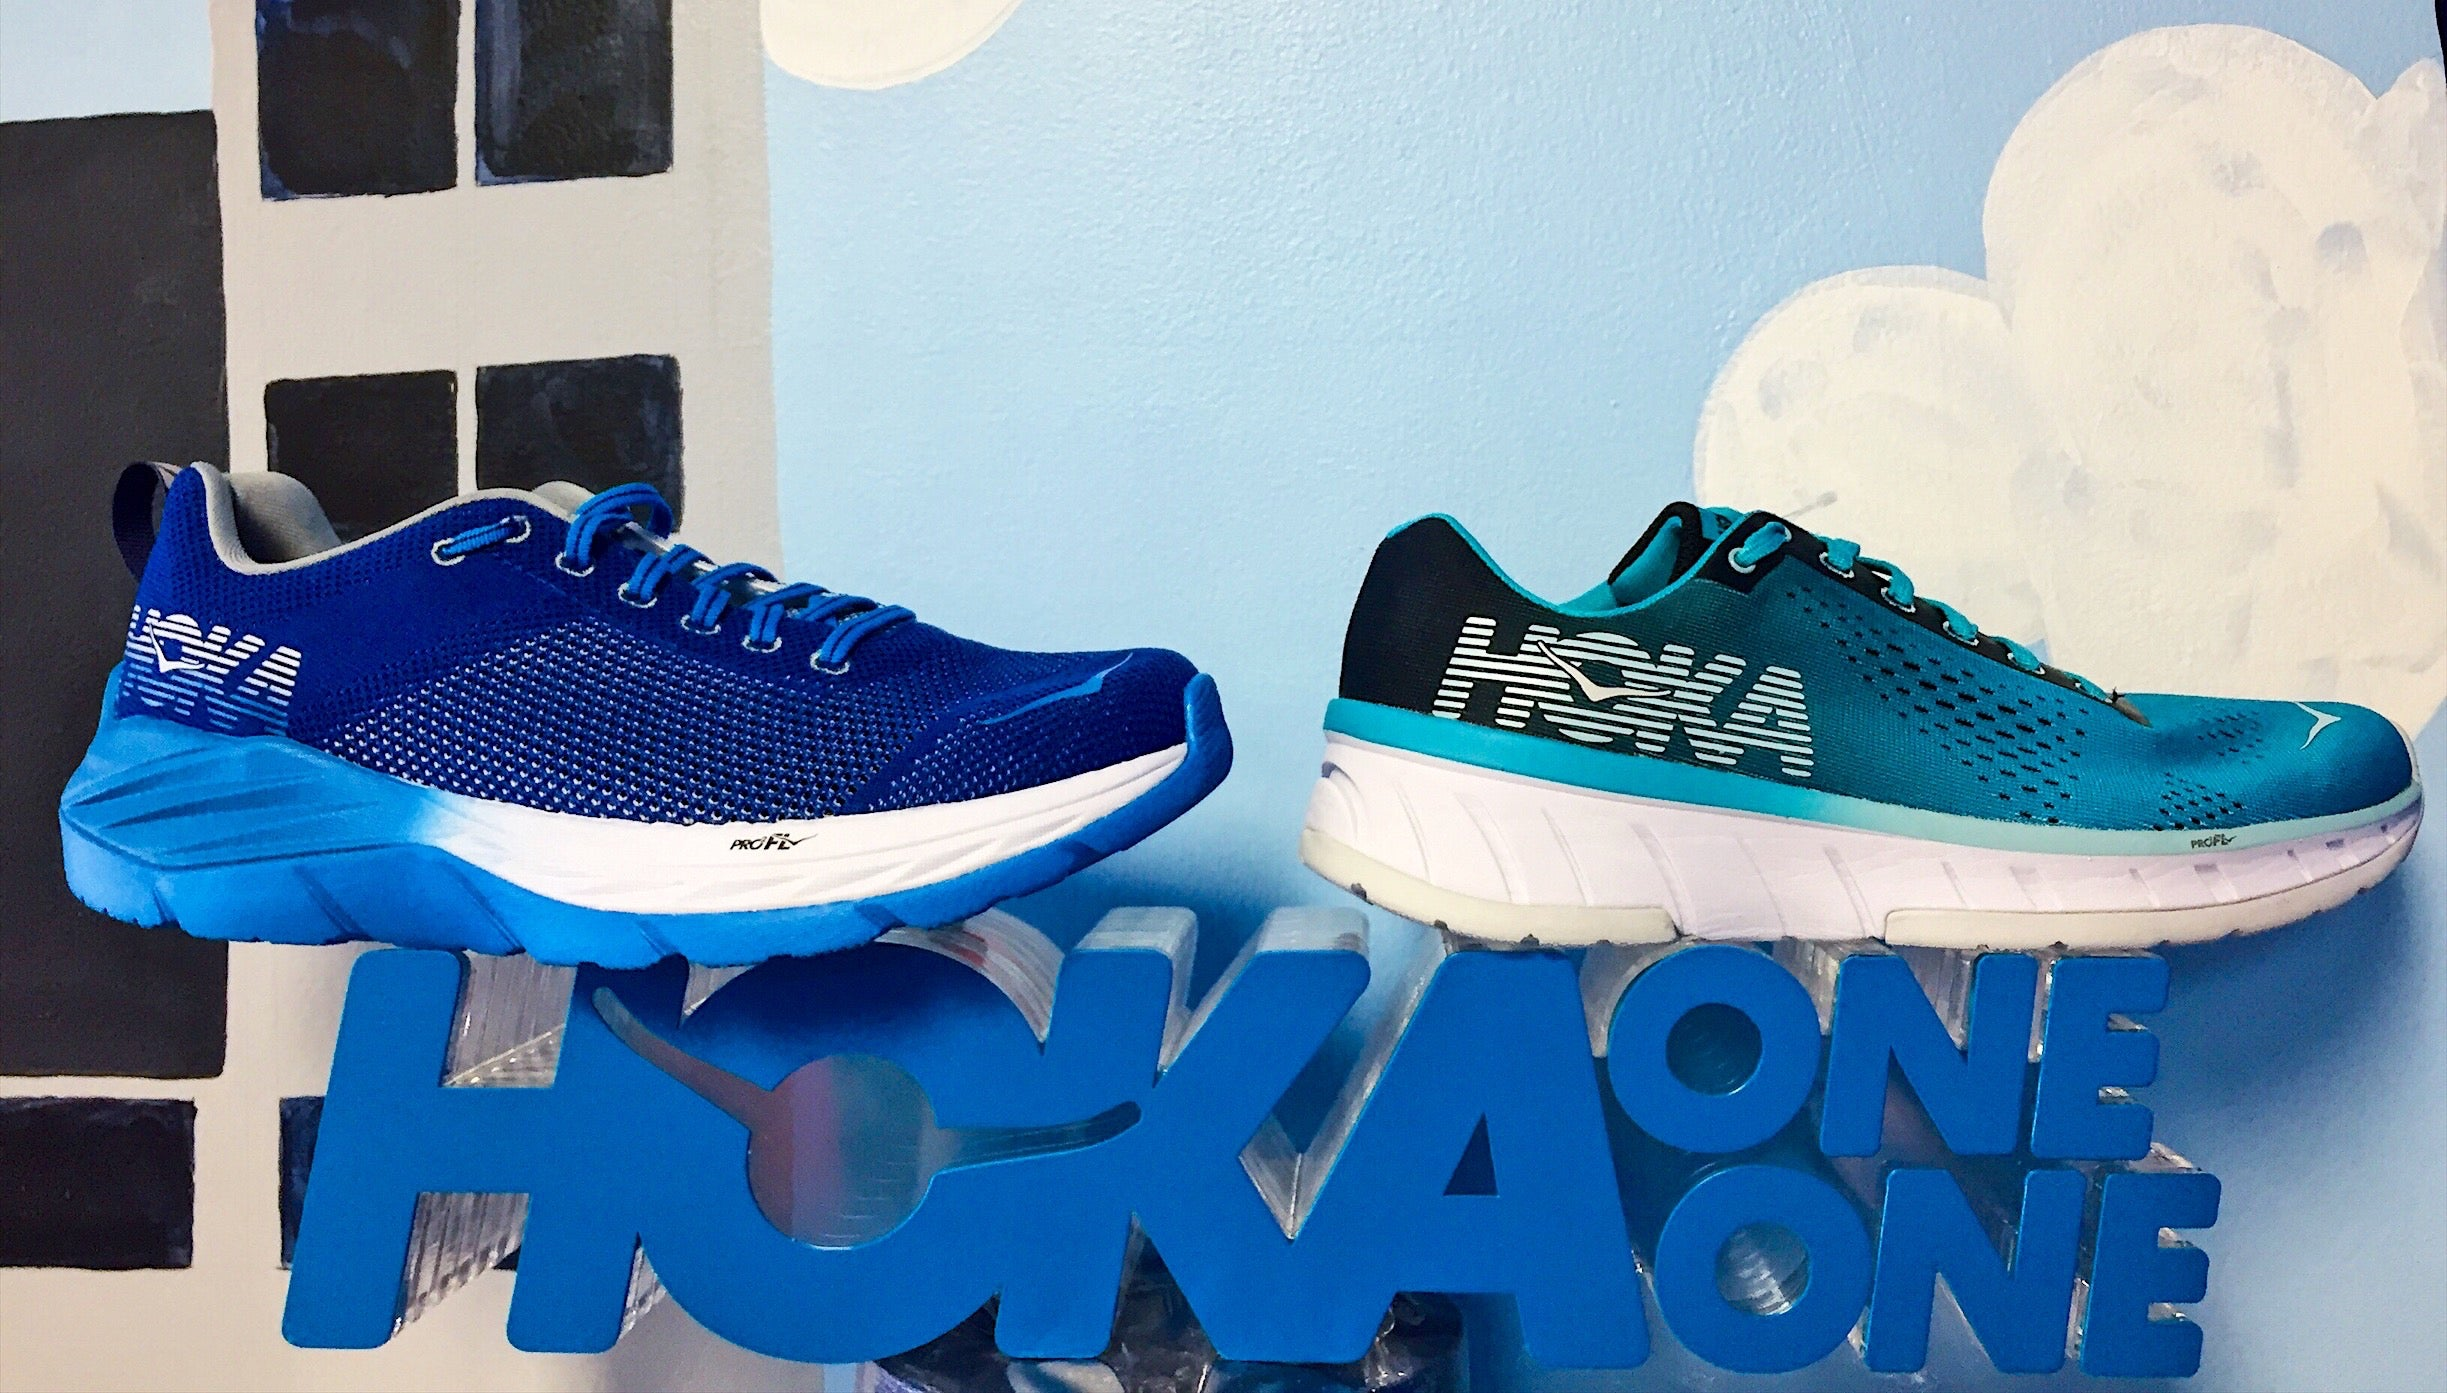 outlet store 3c12b c46a0 HOKA ONE ONE Fly Collection: Cavu and Mach – Columbus ...